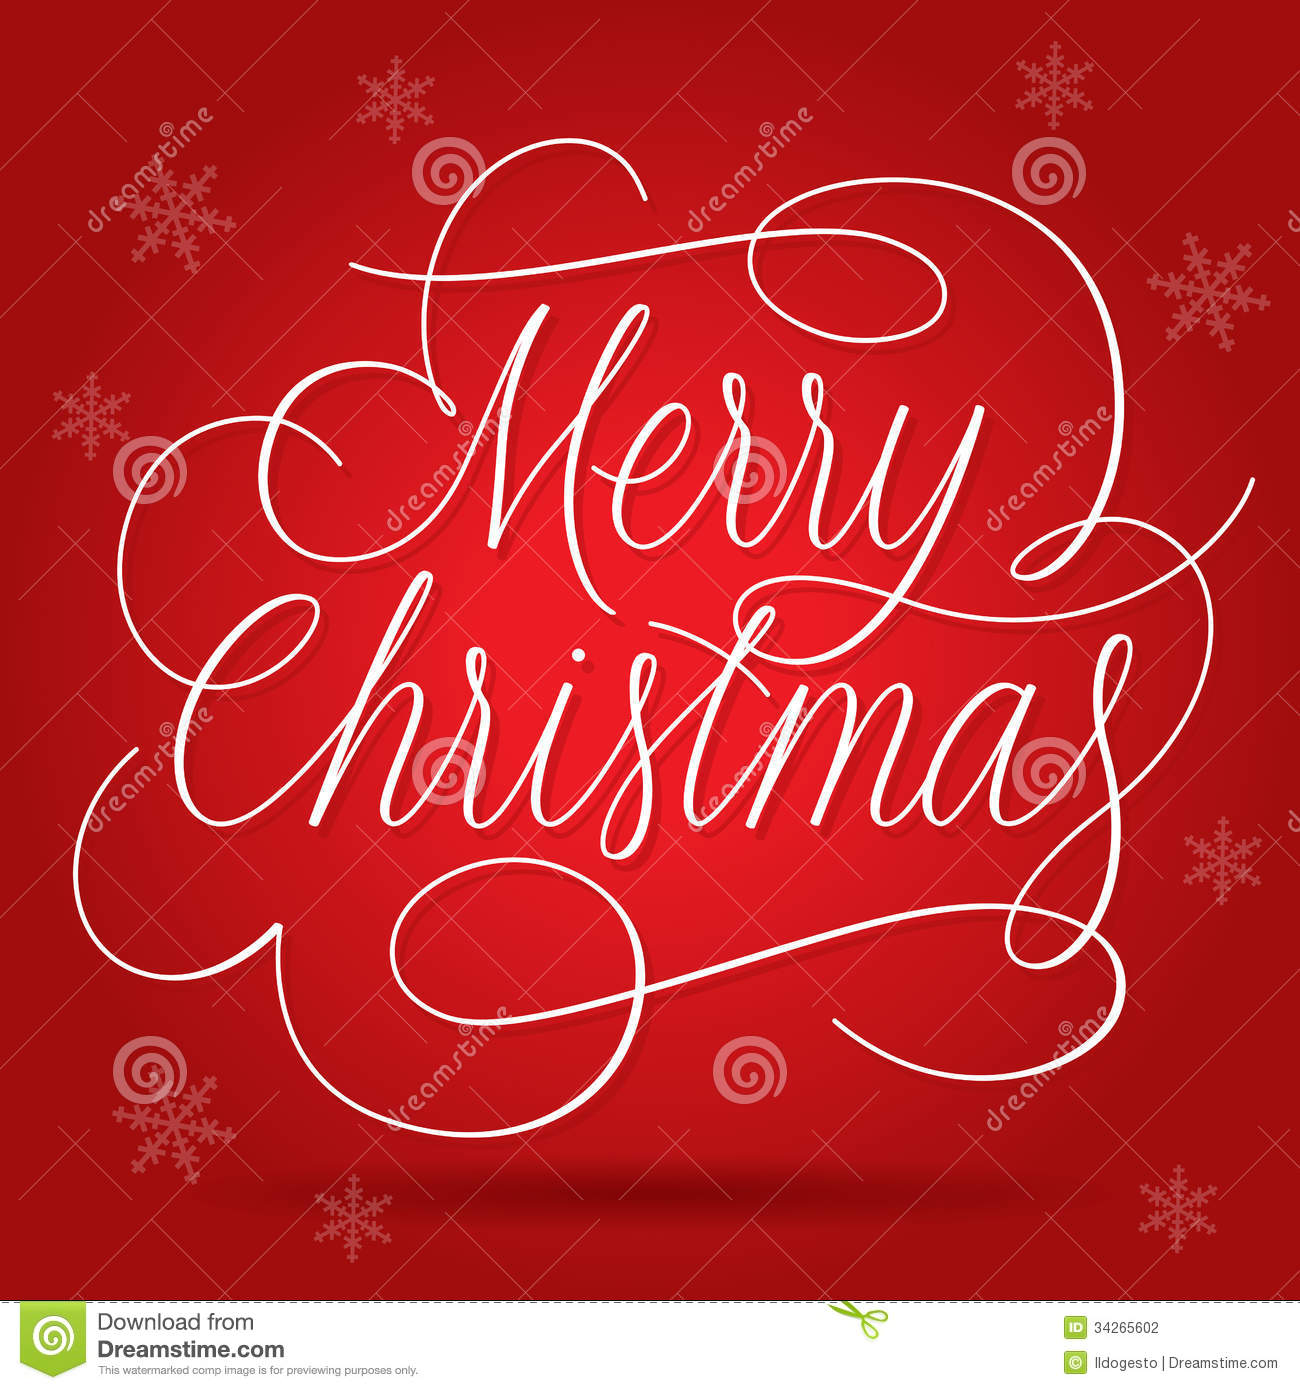 Merry Christmas Greetings Slogan On Red Background Stock Vector